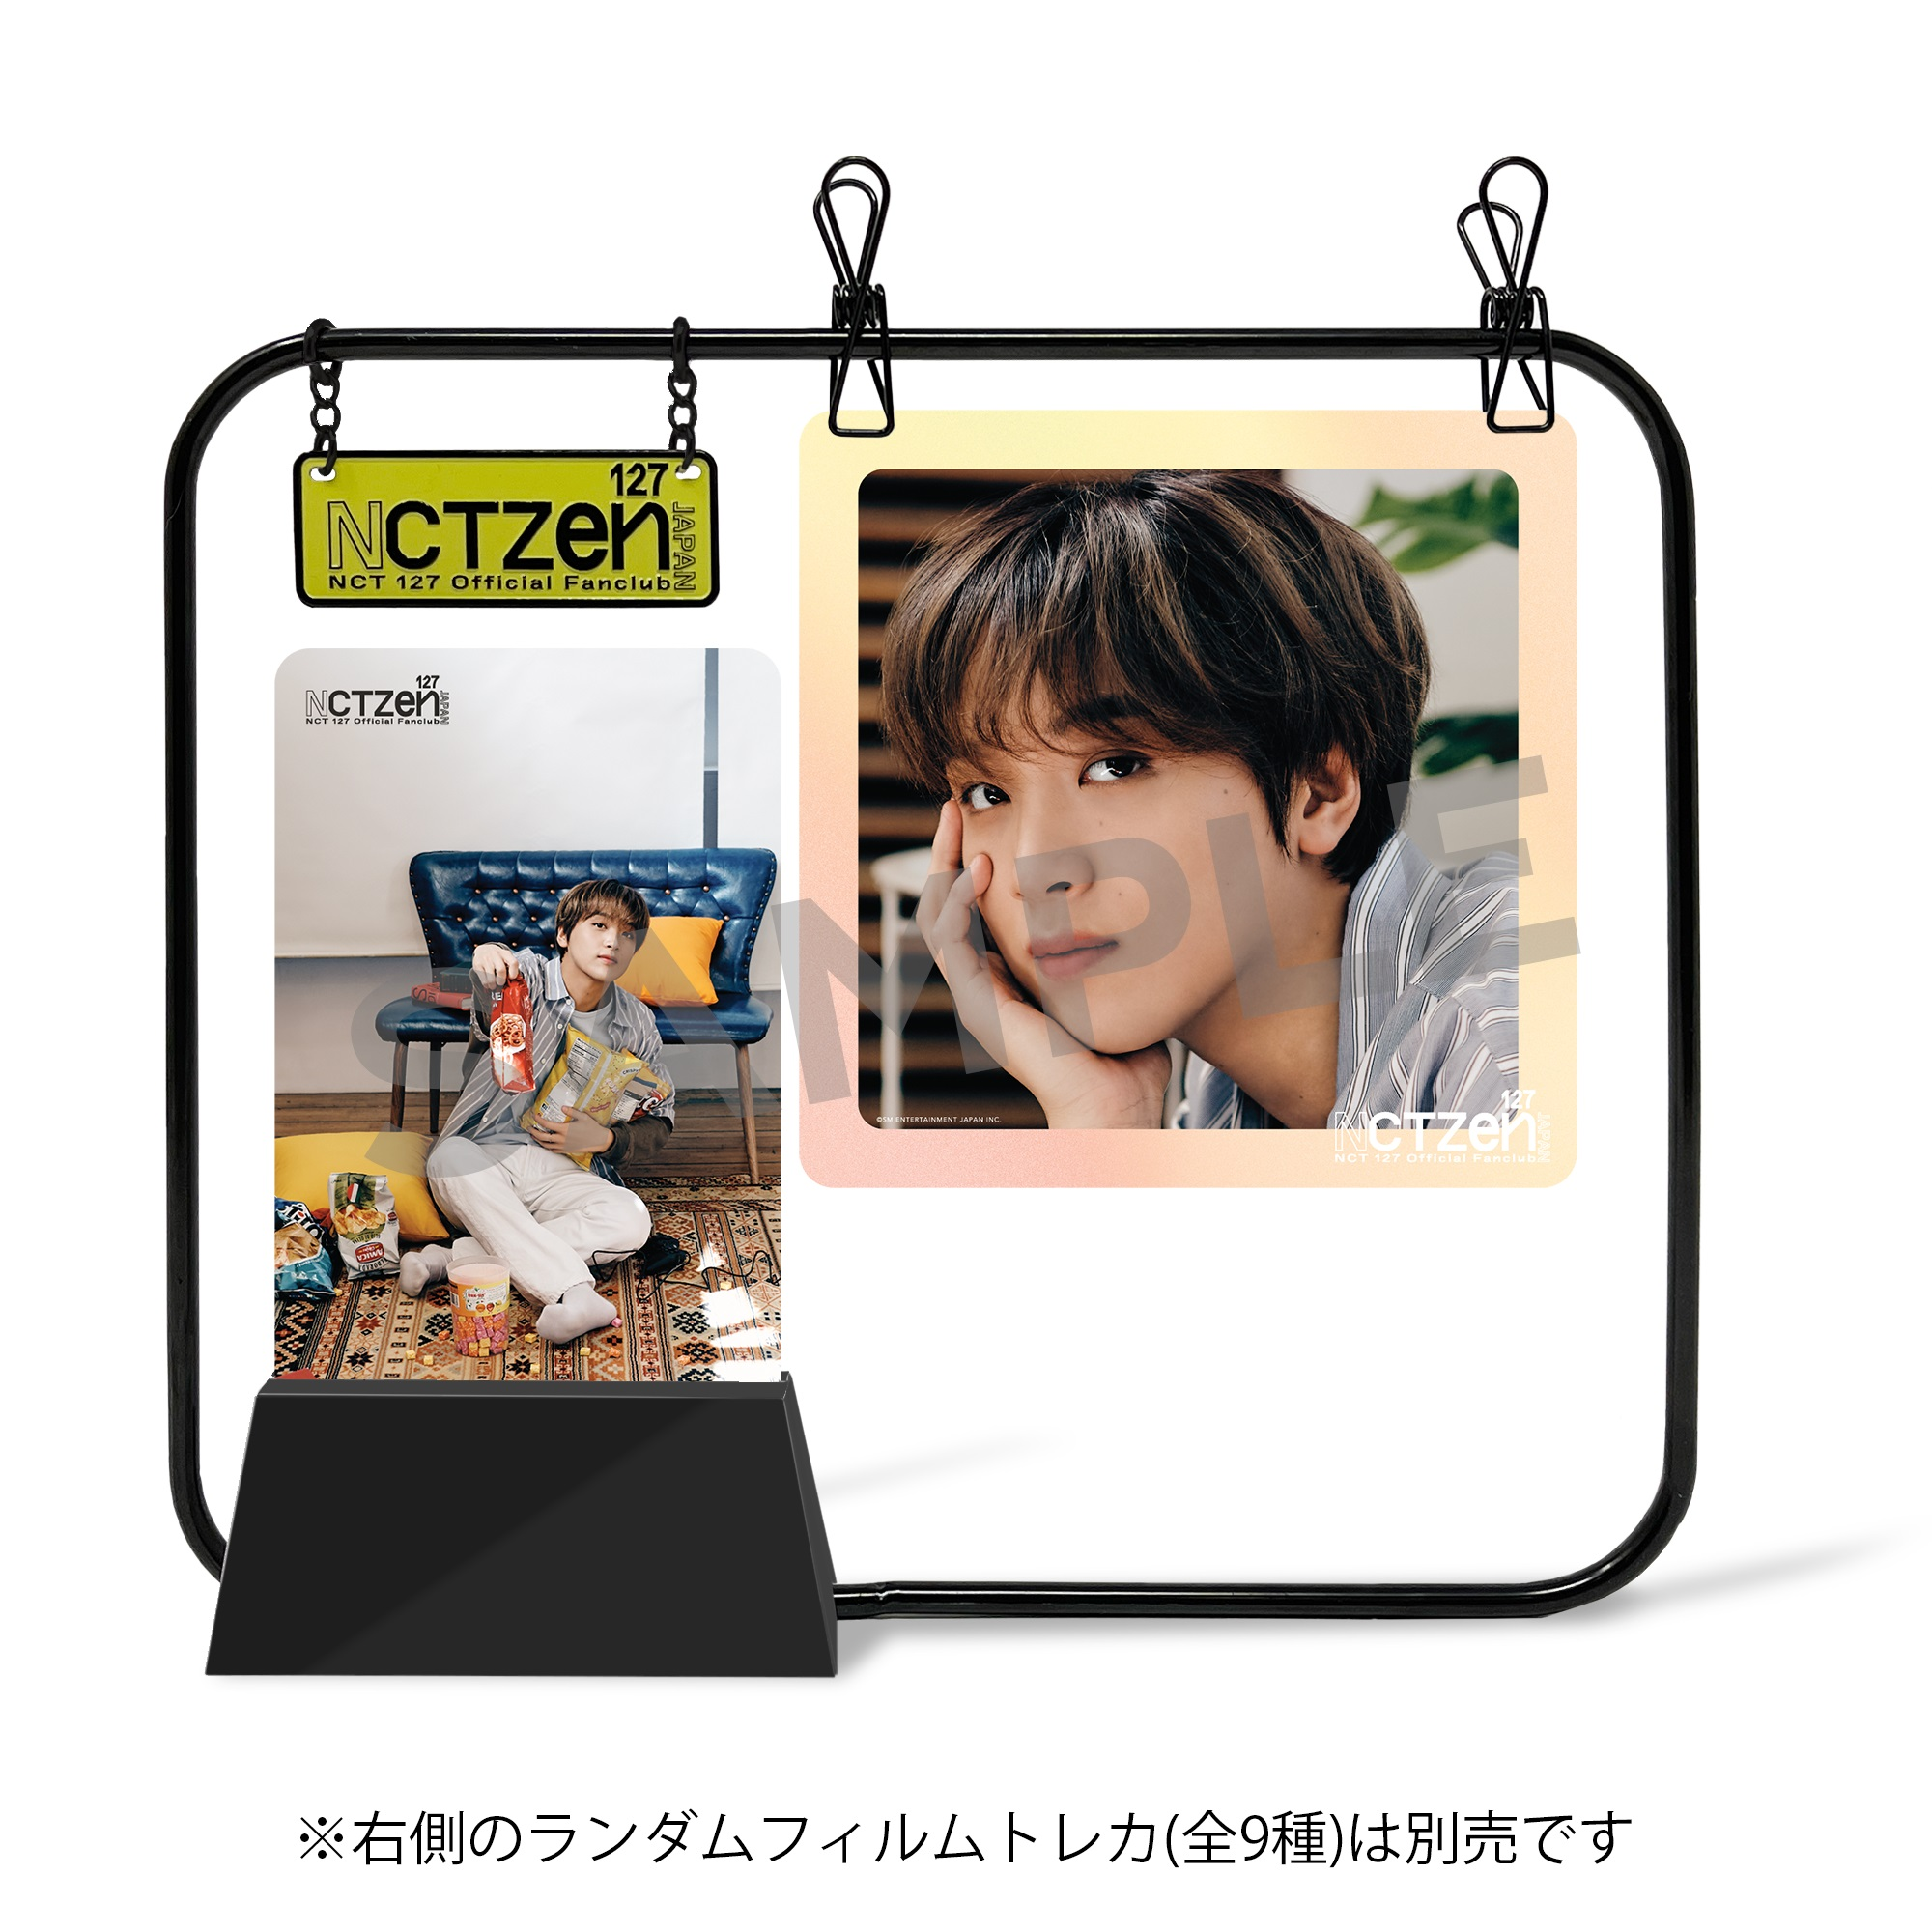 【NCT 127】『NCT 127 OFFICIAL BOOK Vol.4』グッズを、メンバー別に詳しく紹介!_10_3